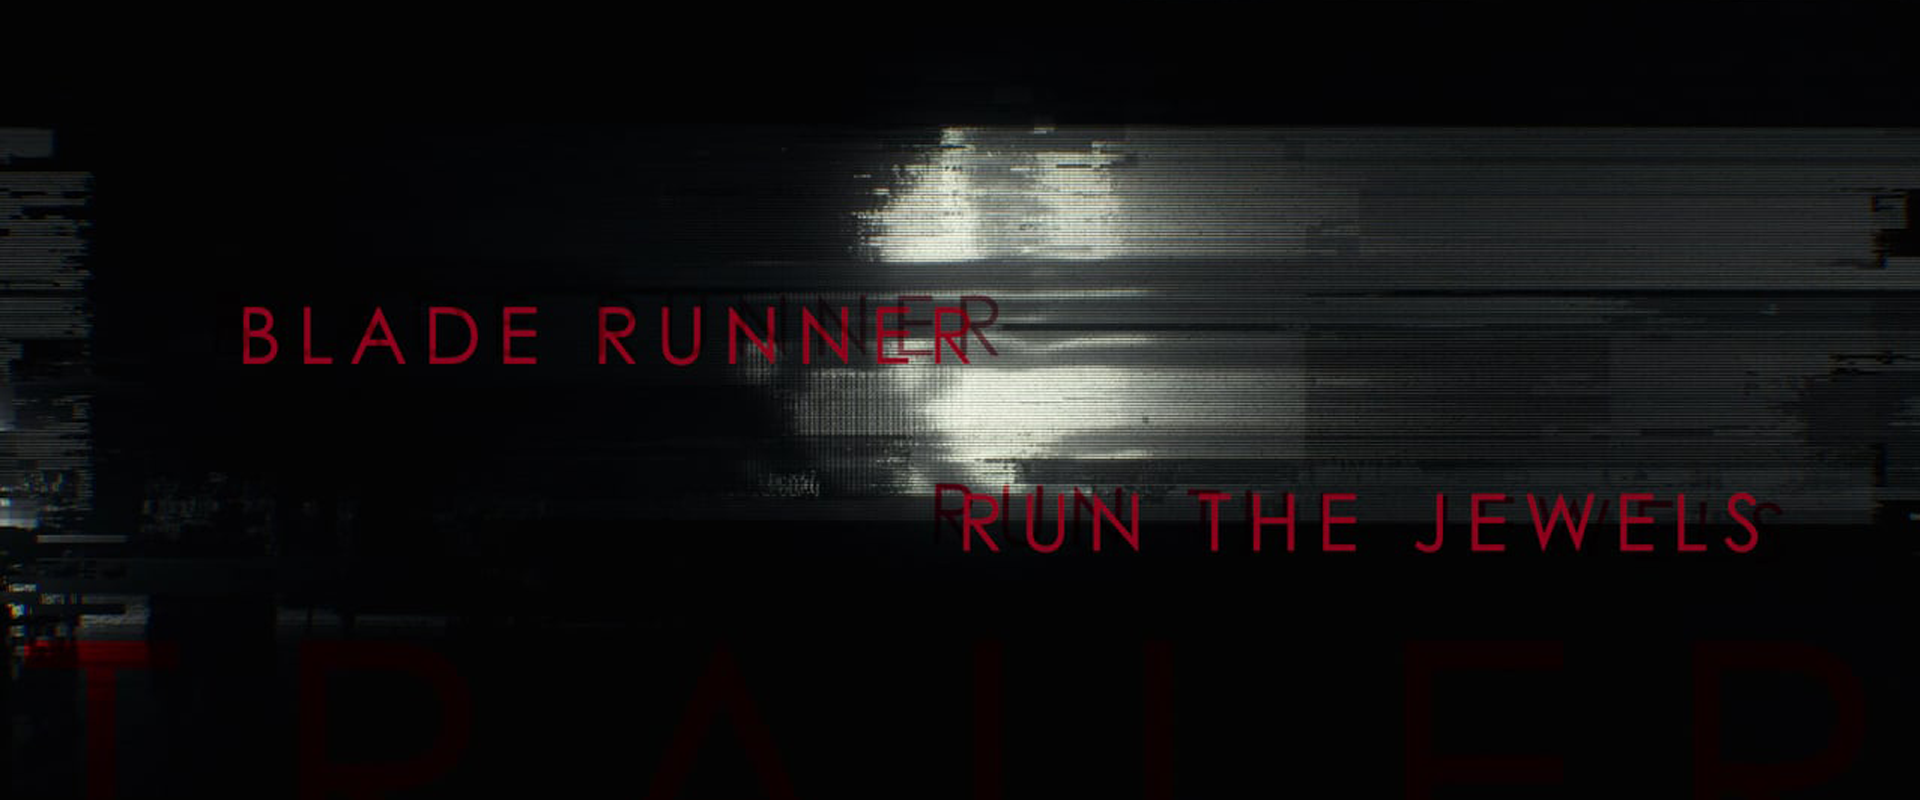 blade runner run the jewels thumbnail